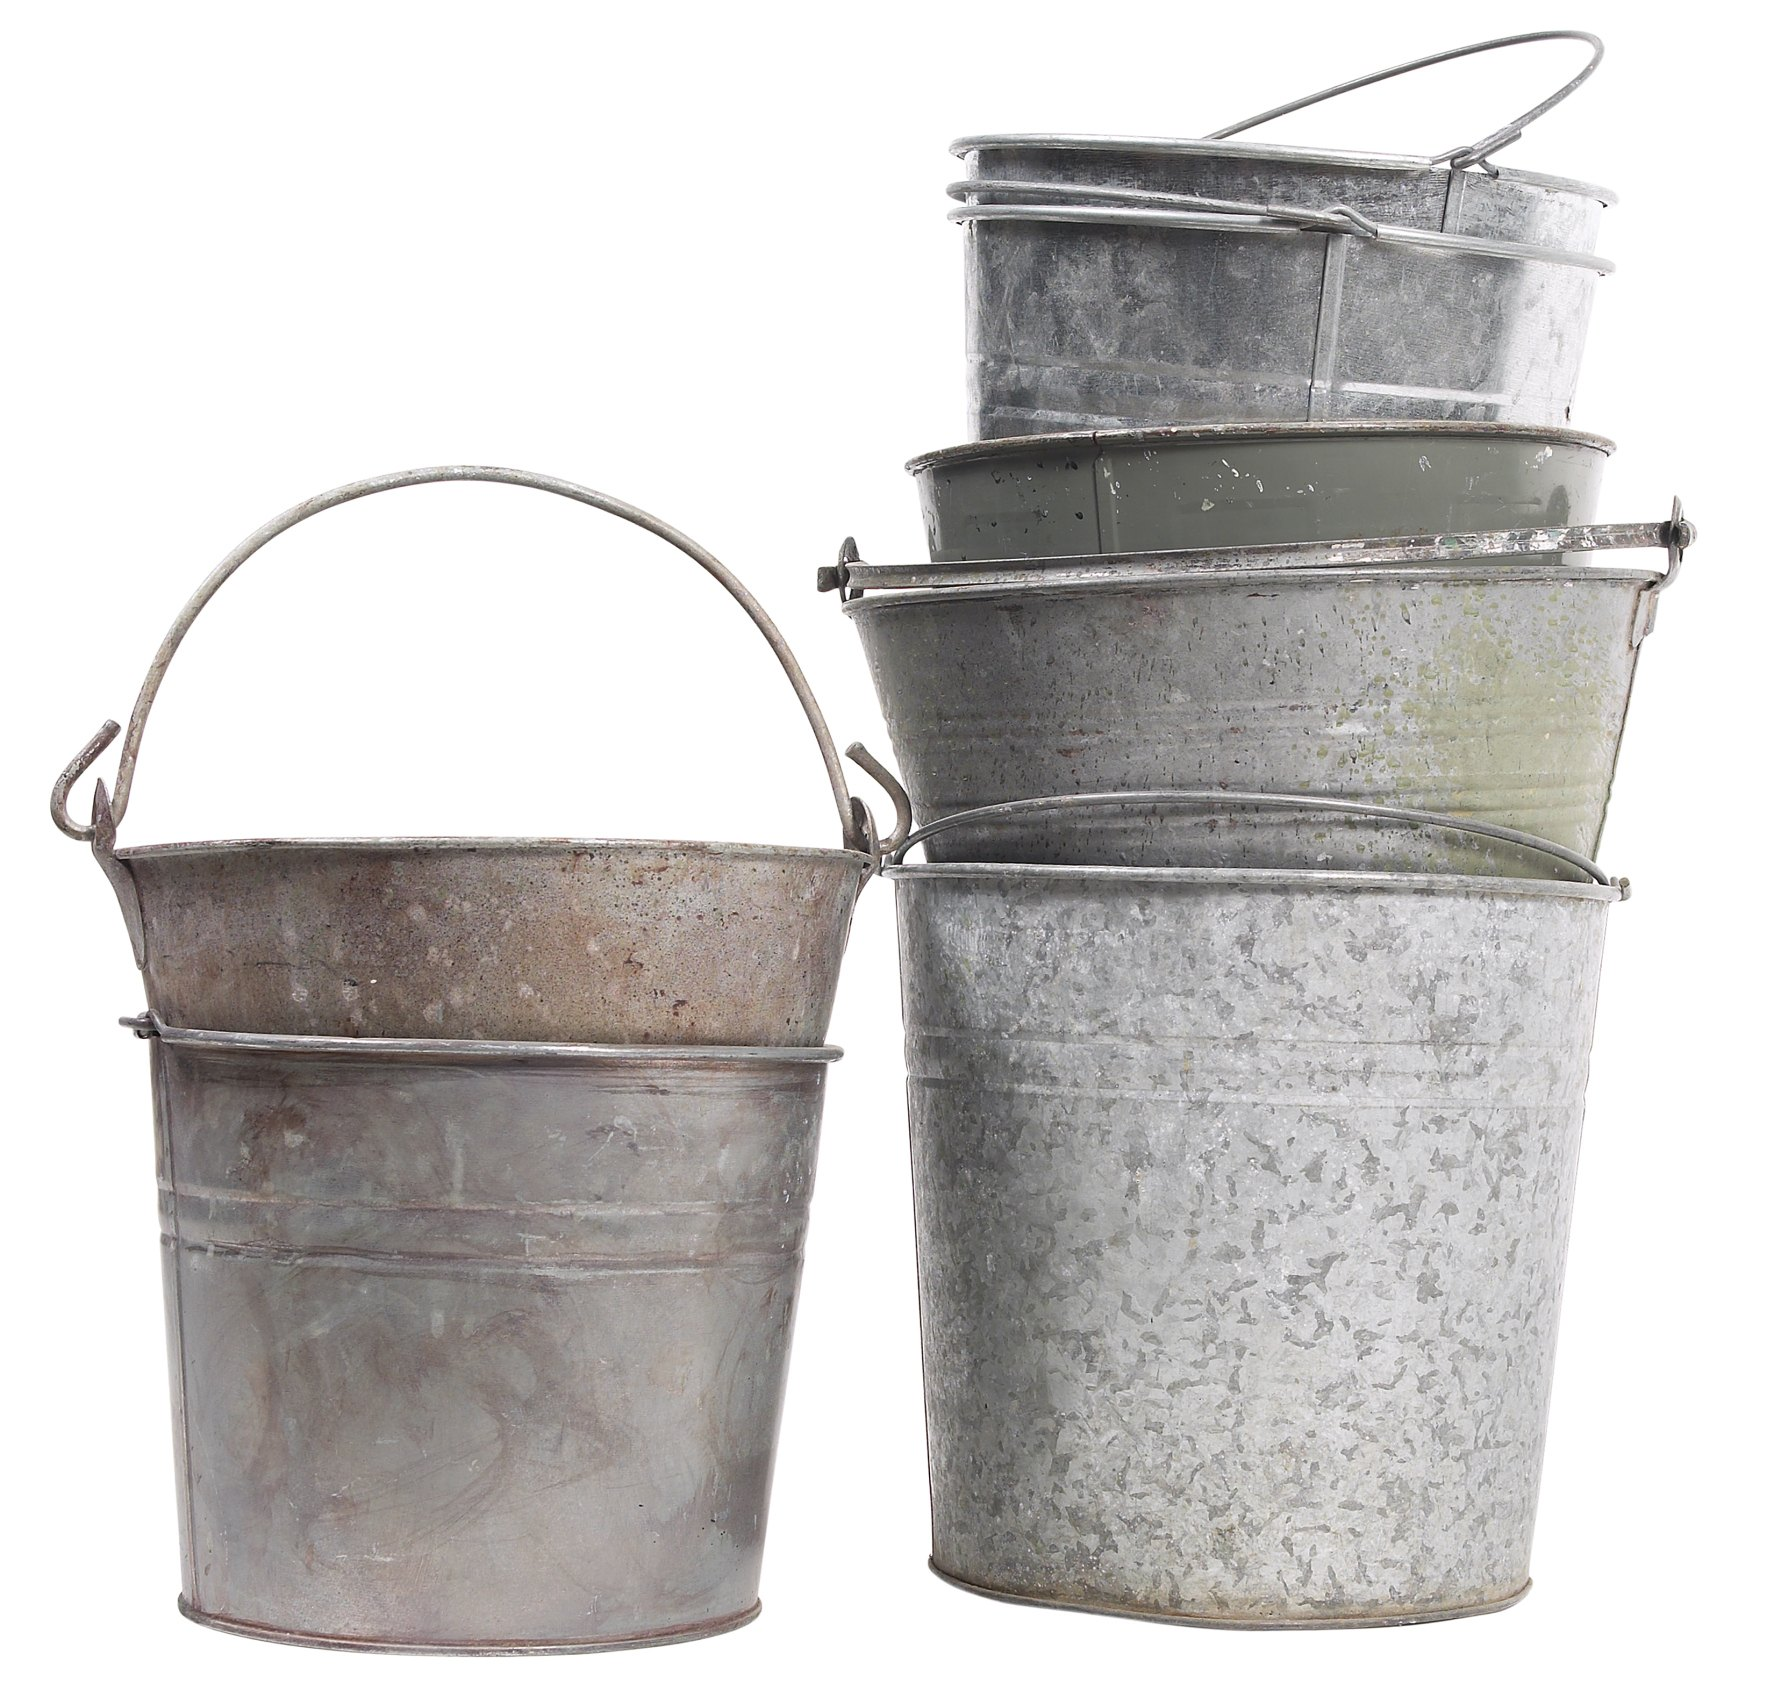 Decor ideas for galvanized buckets ehow for How to decorate a bucket